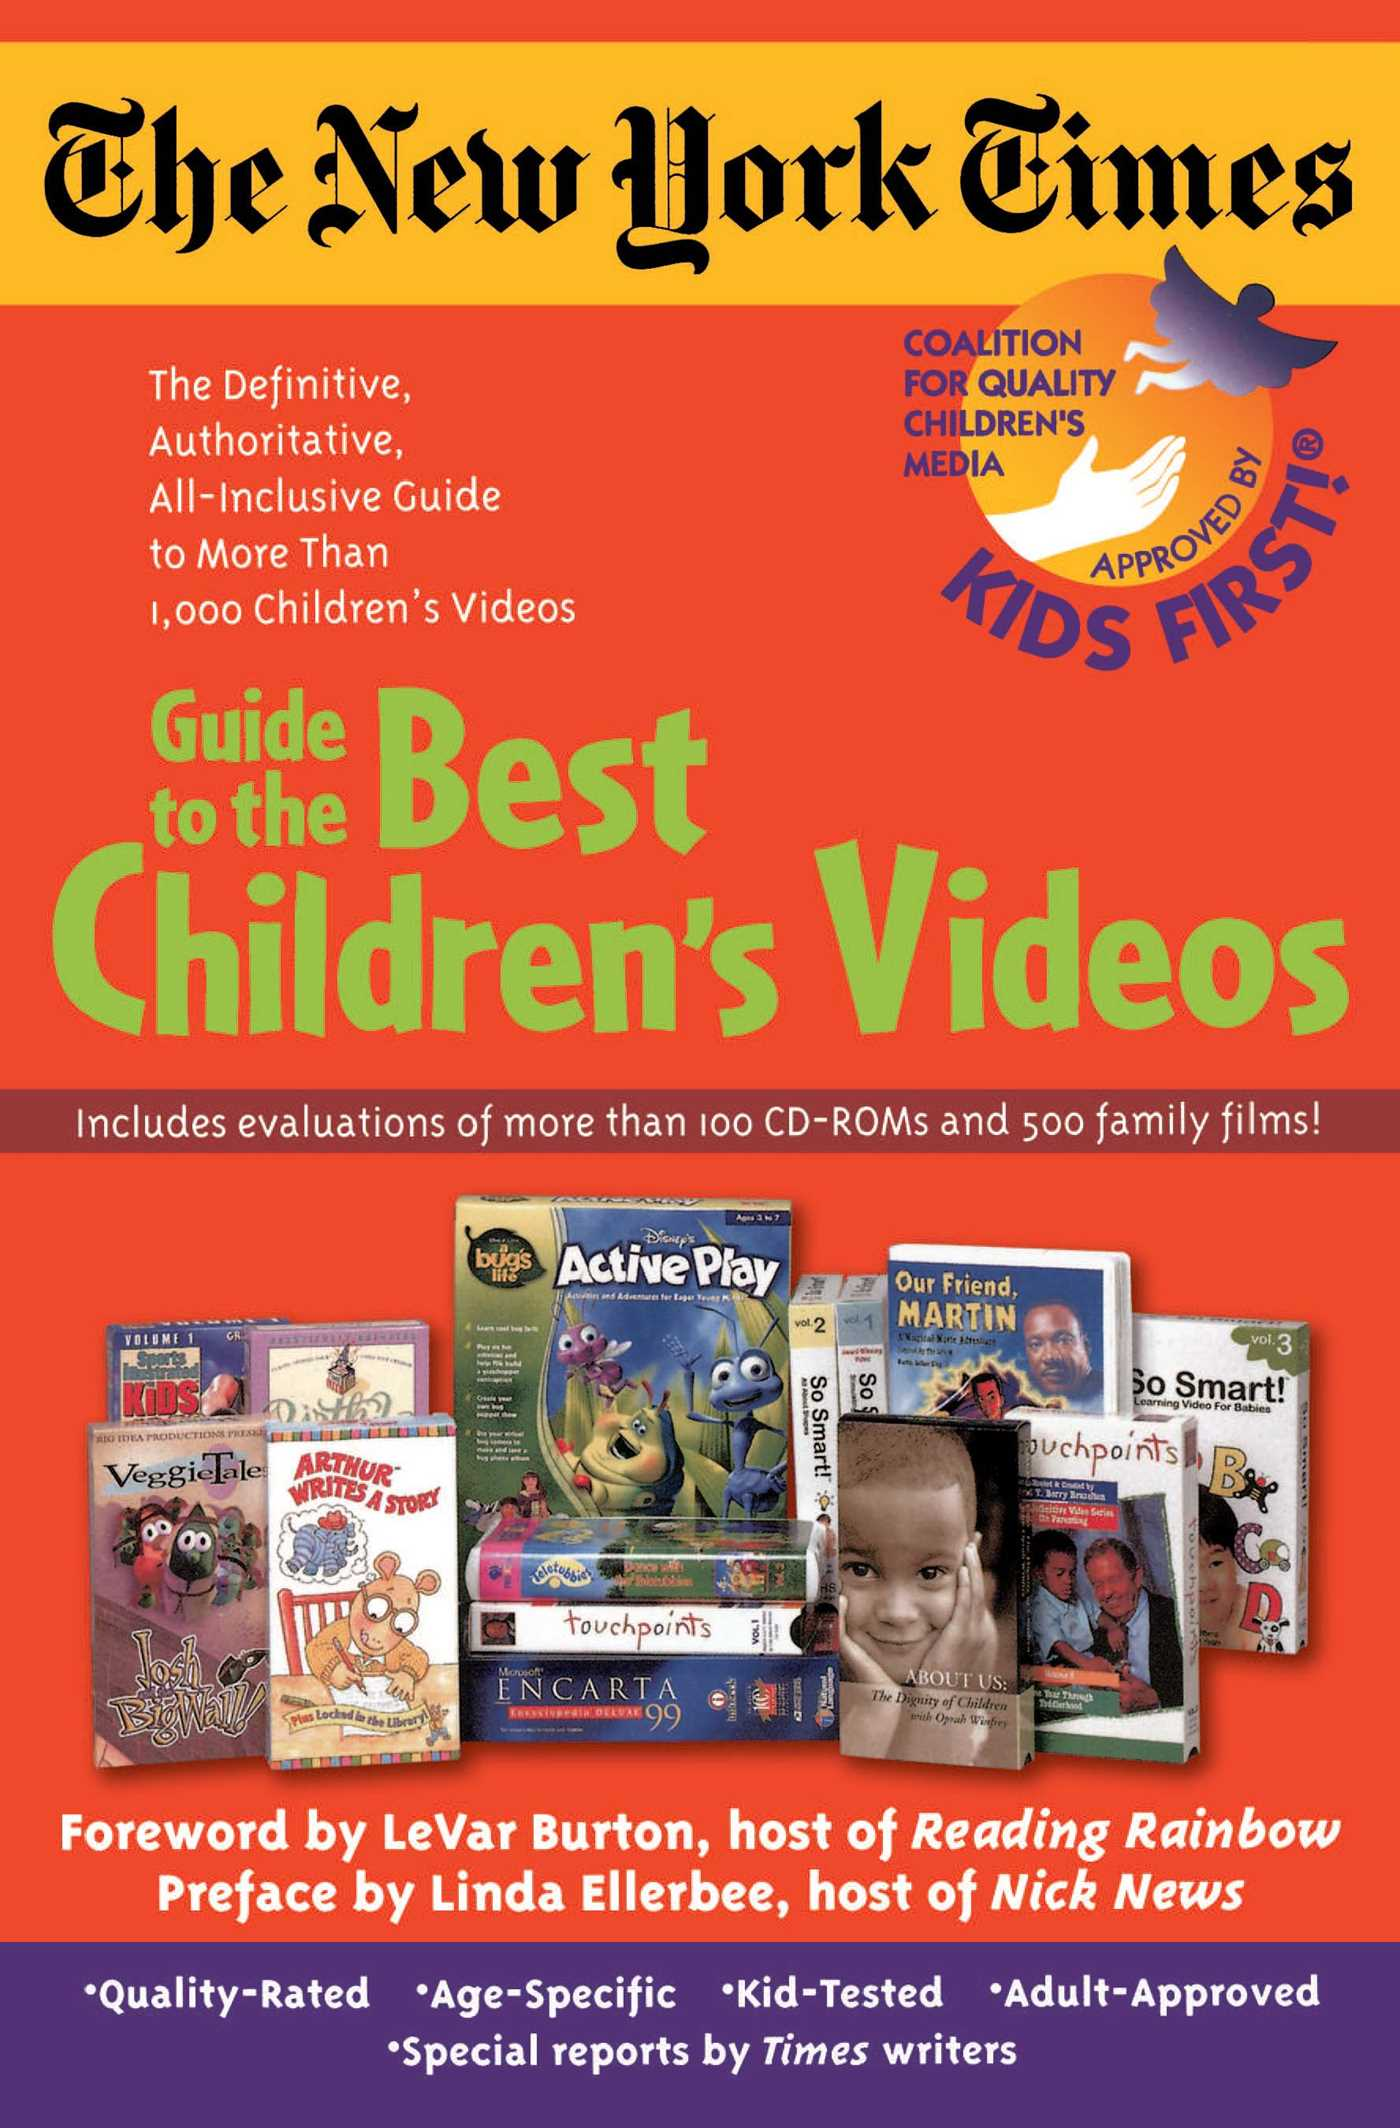 The new york times guide to the best childrens videos 9780671036690 hr